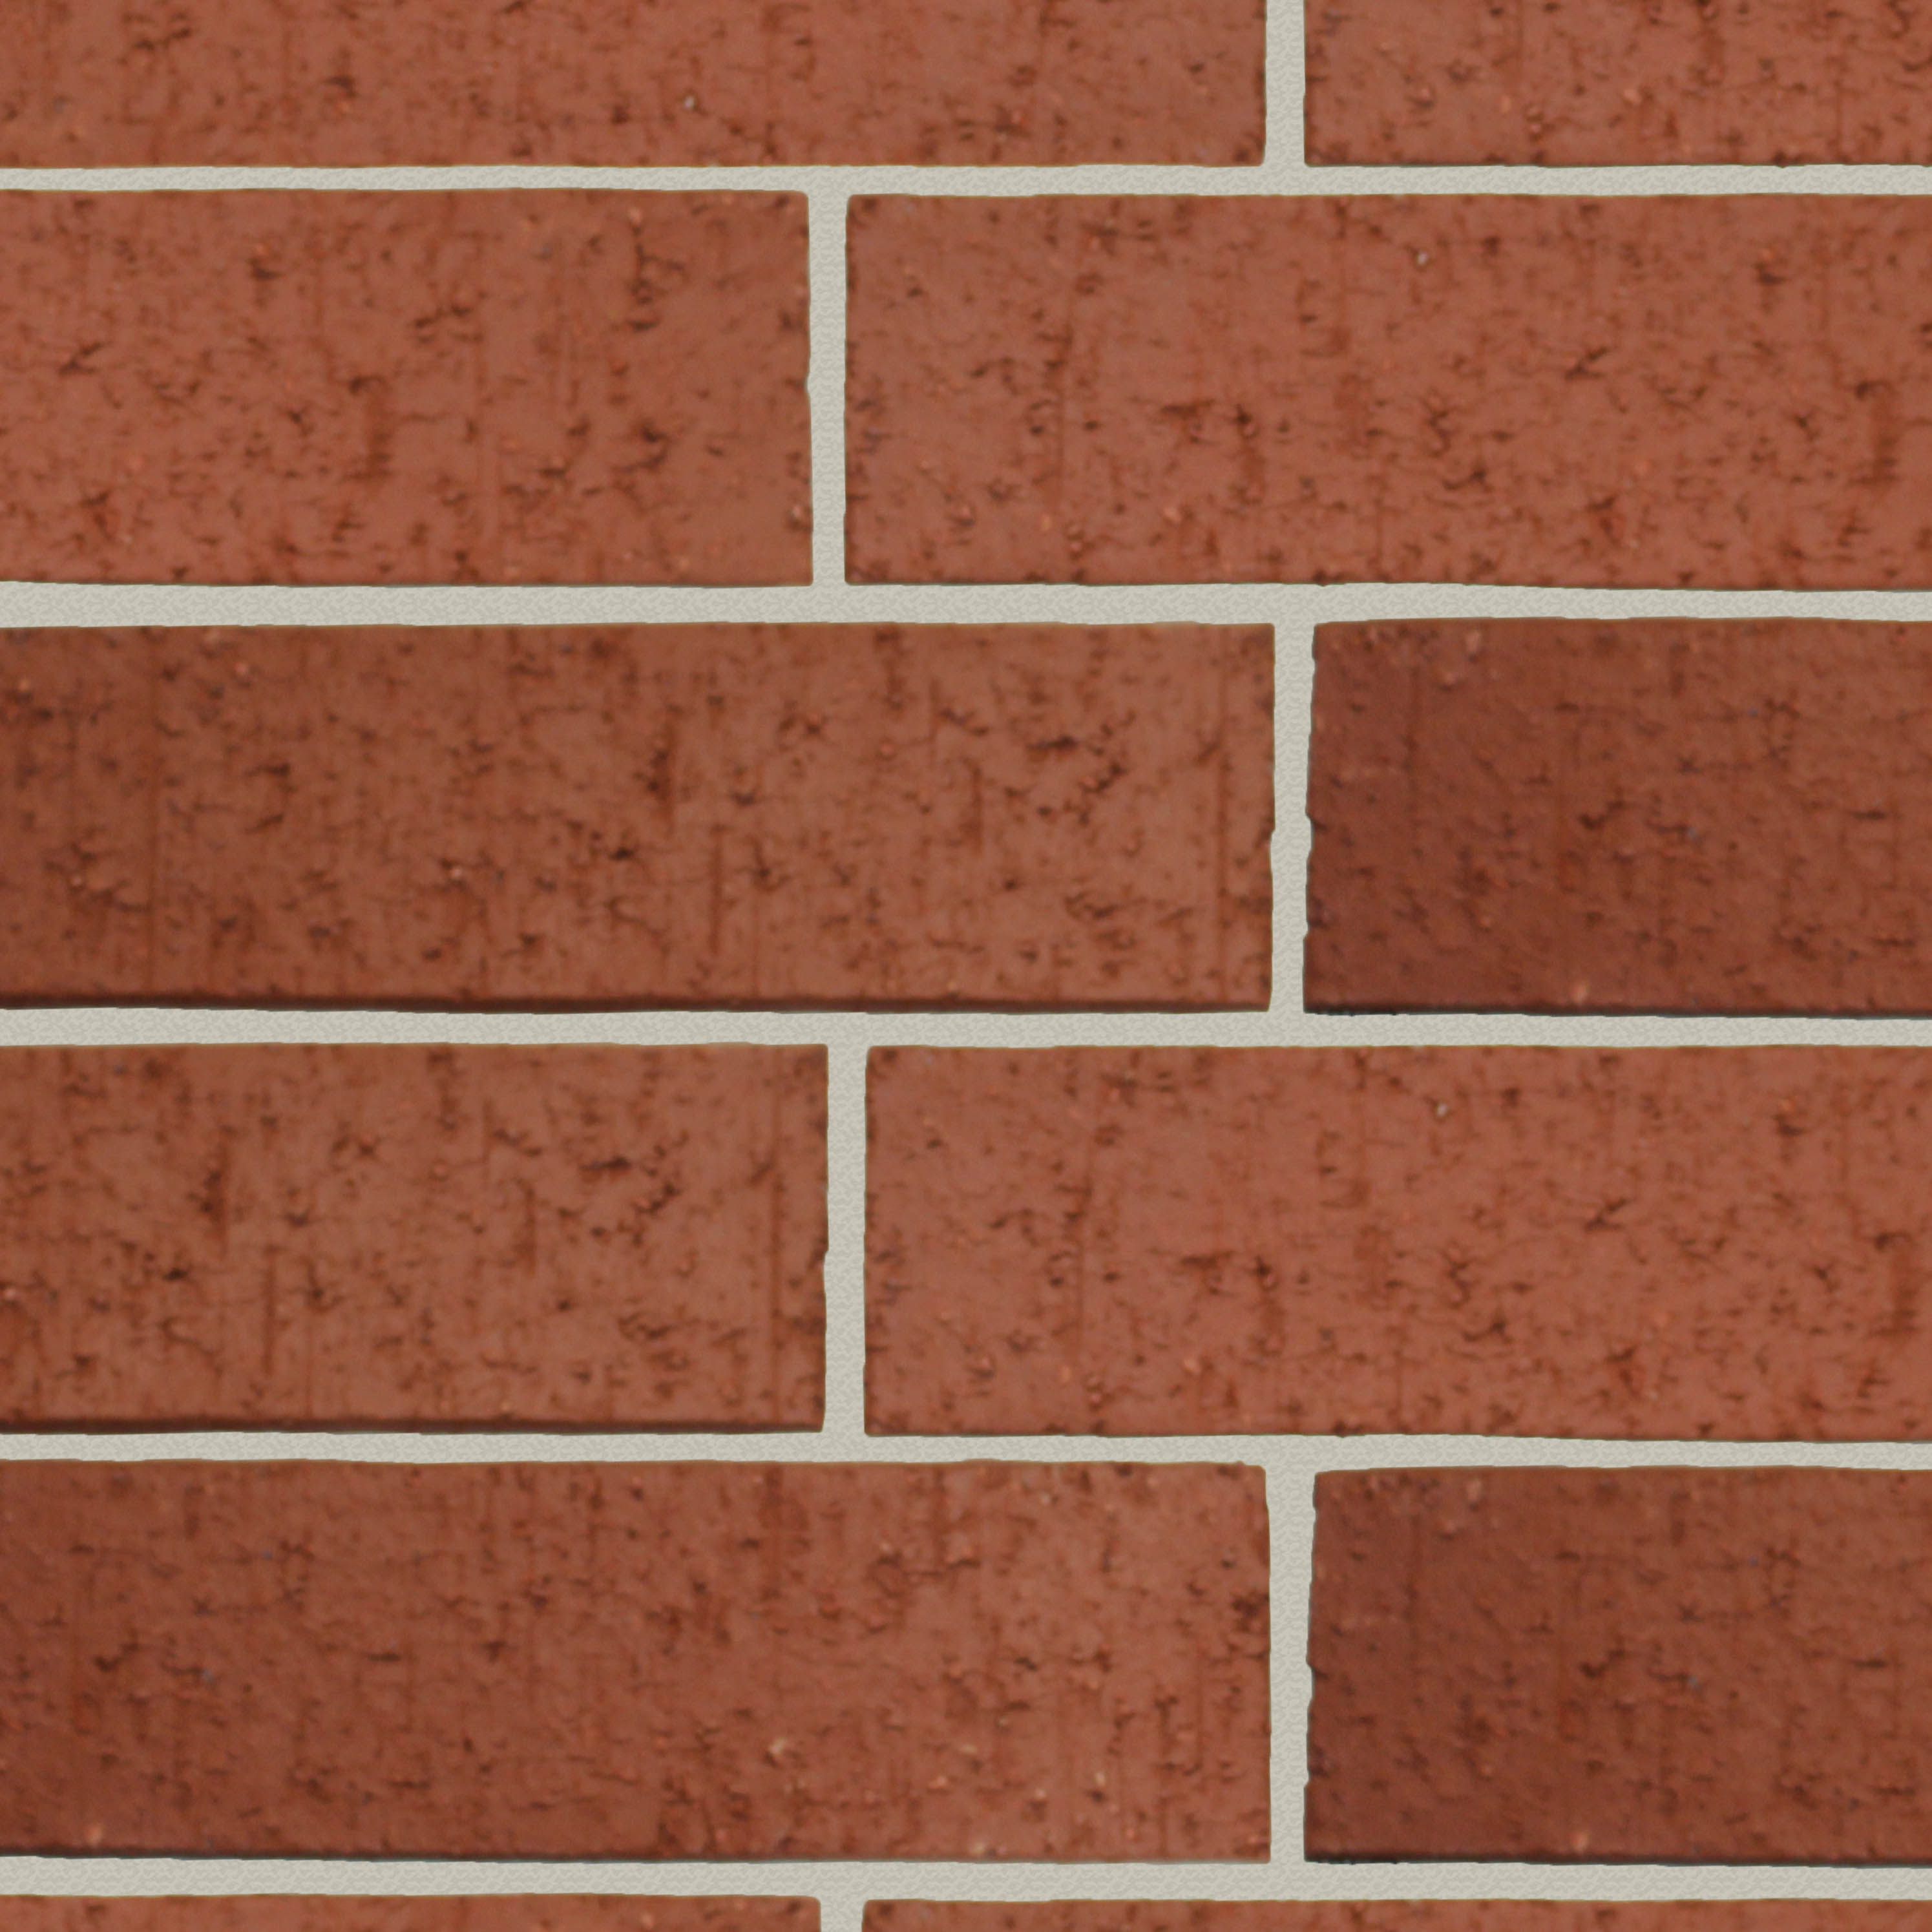 Acme® Brick Garnet Blend #2 King Size Brick, Velour